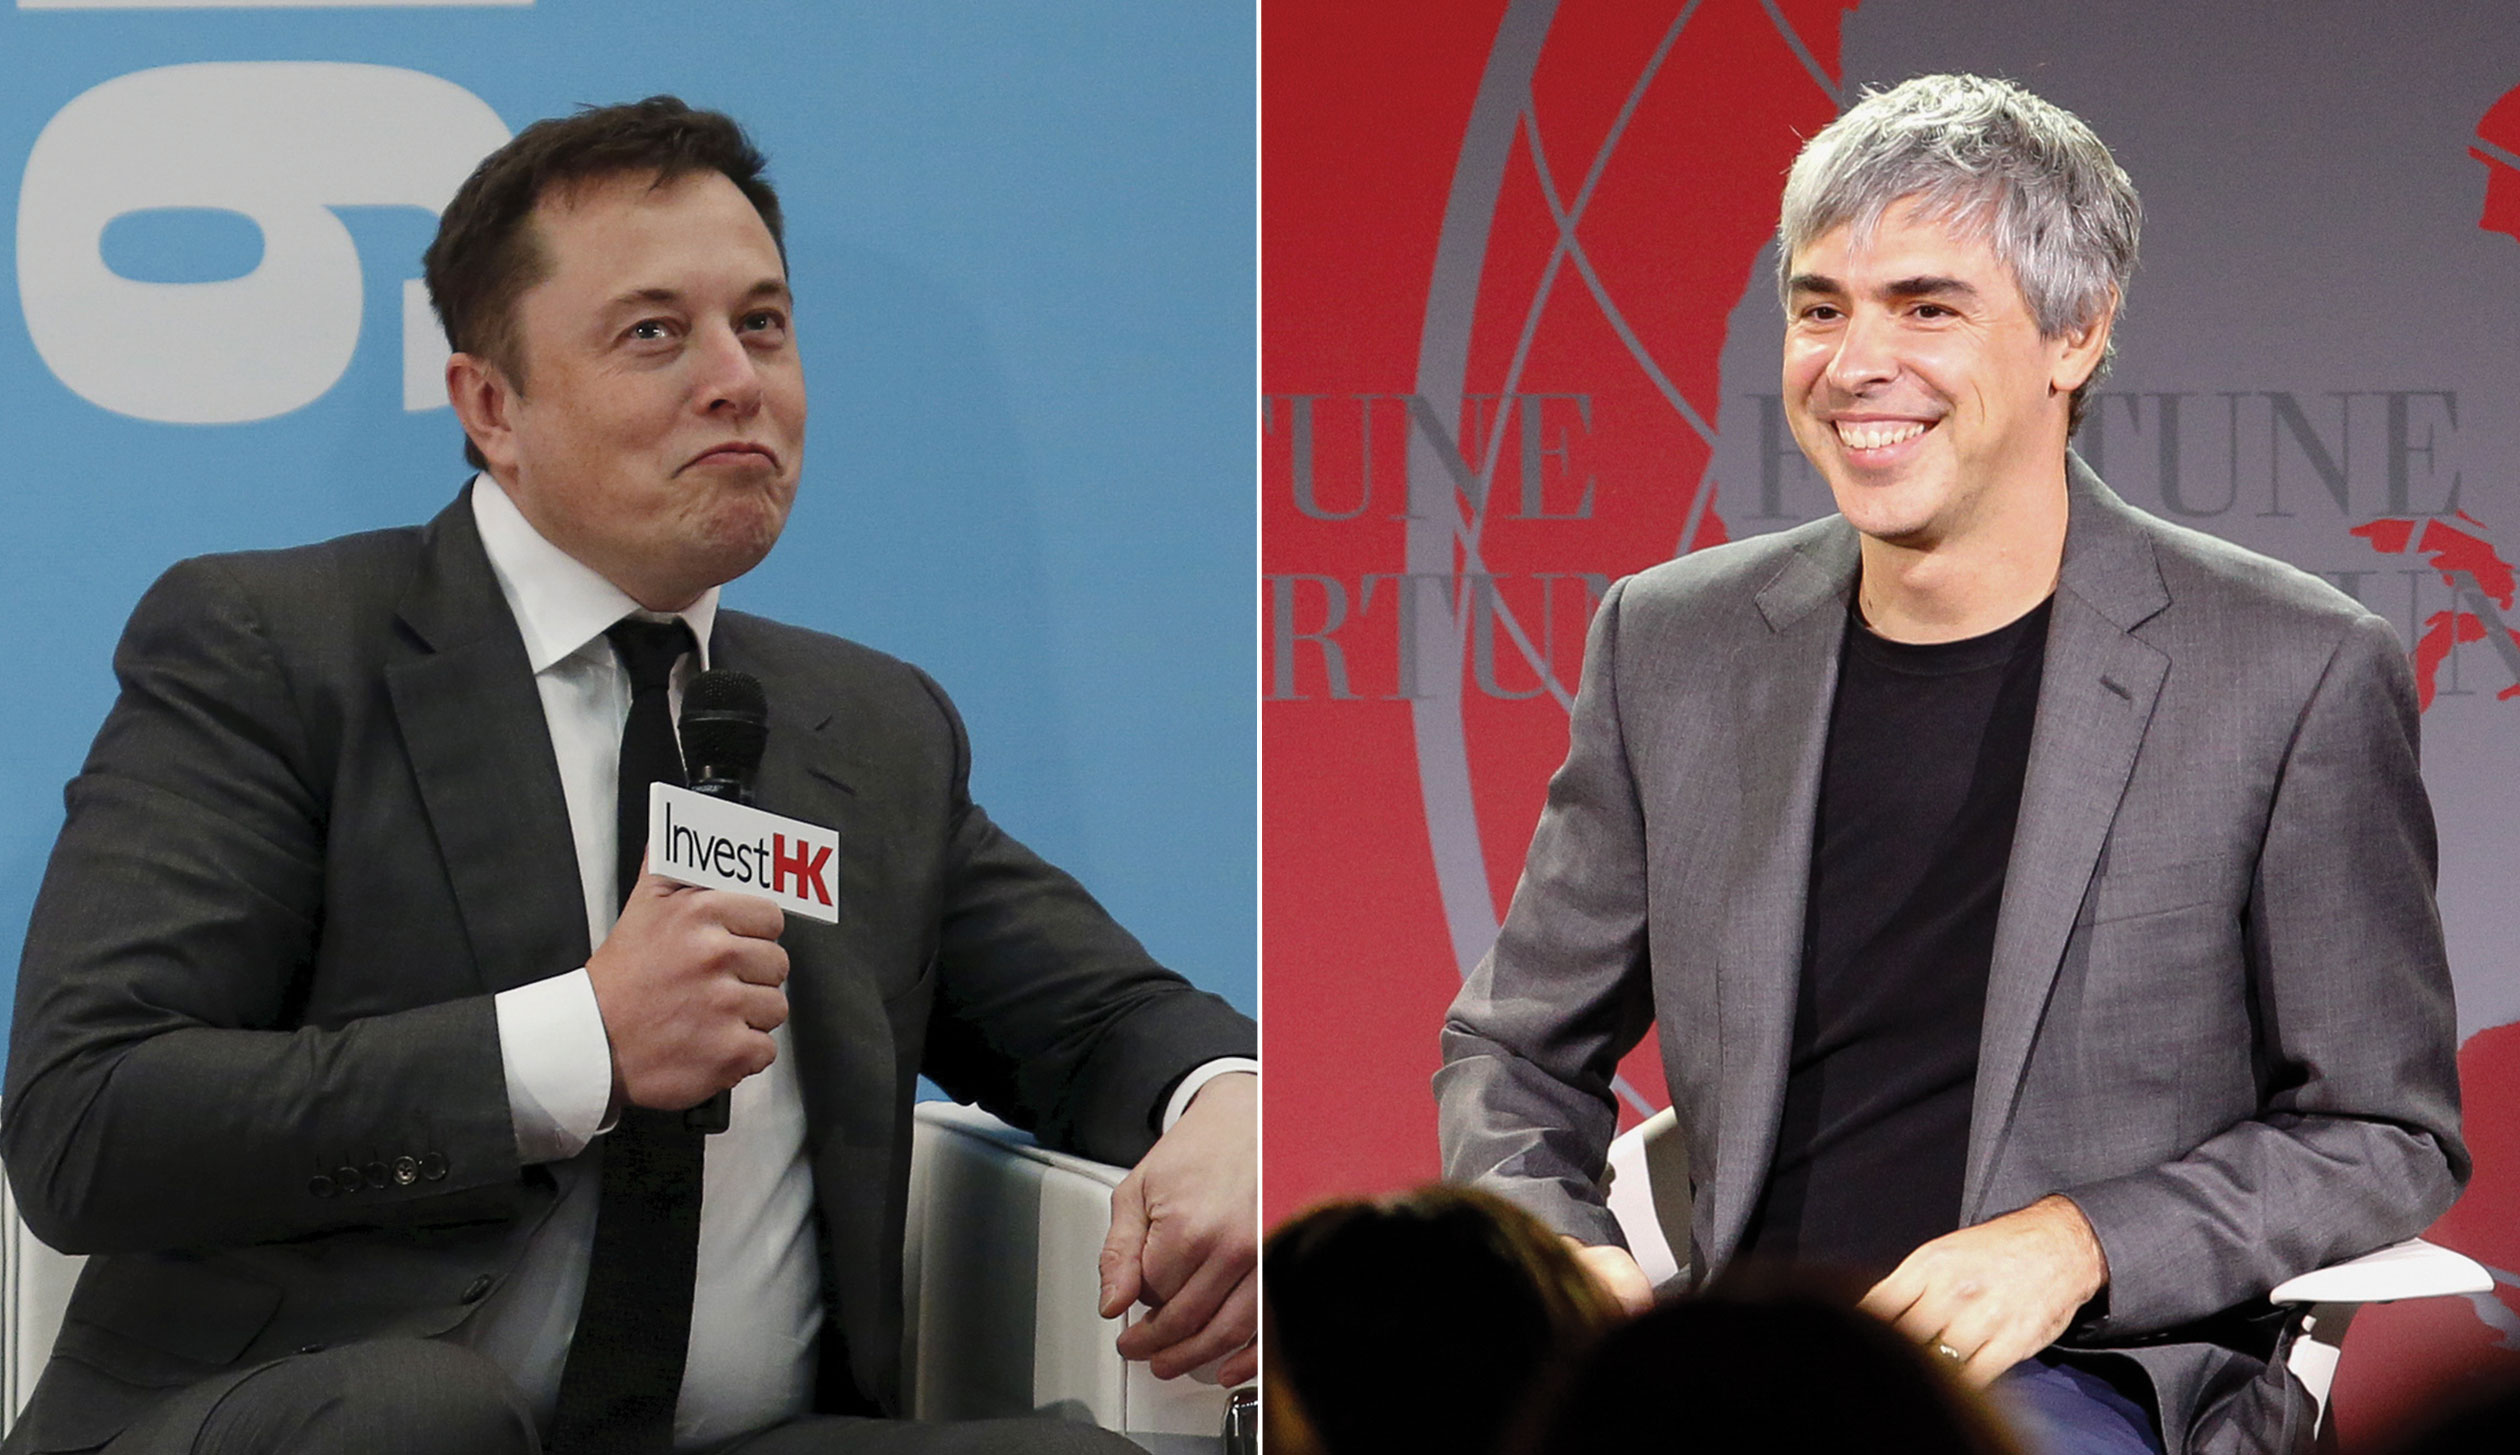 Alphabet CEO Larry Page and Tesla CEO Elon Musk